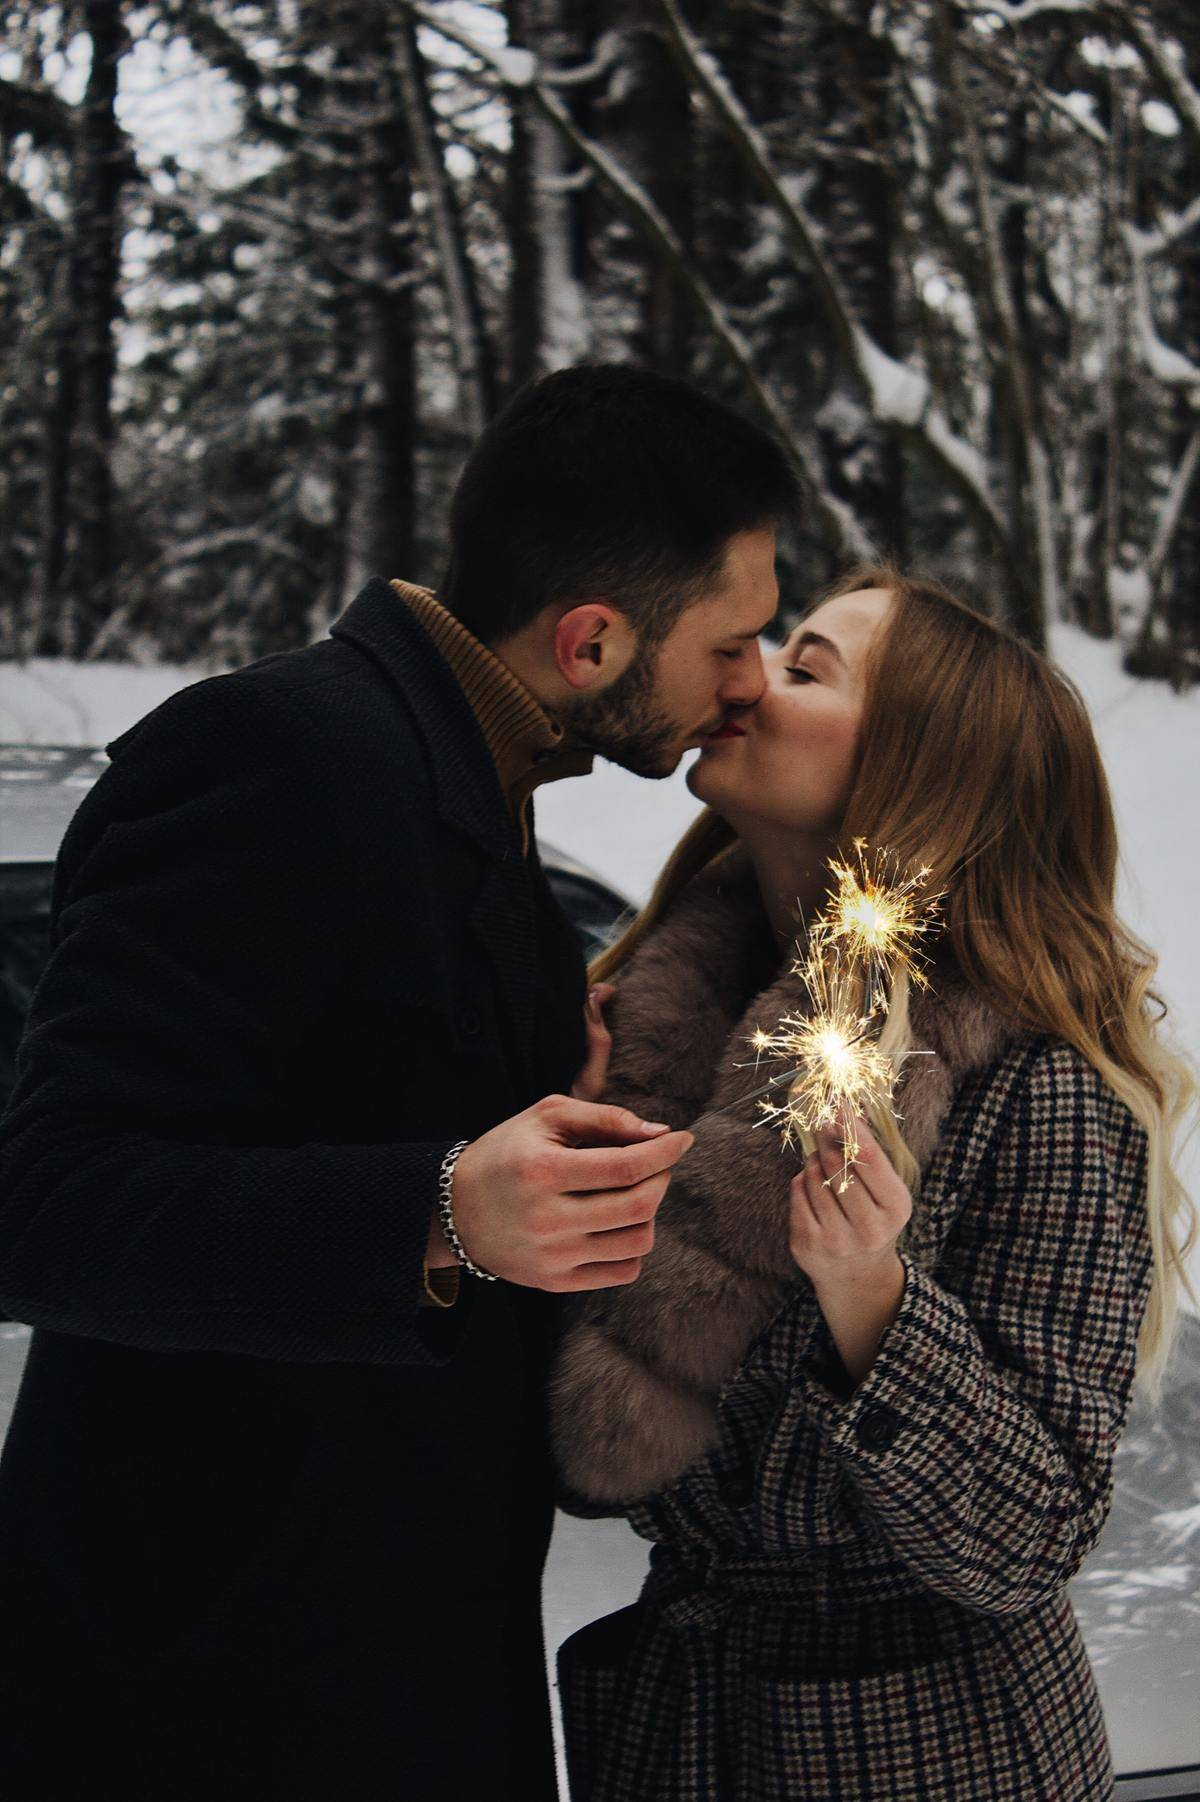 couple kissing in the winter